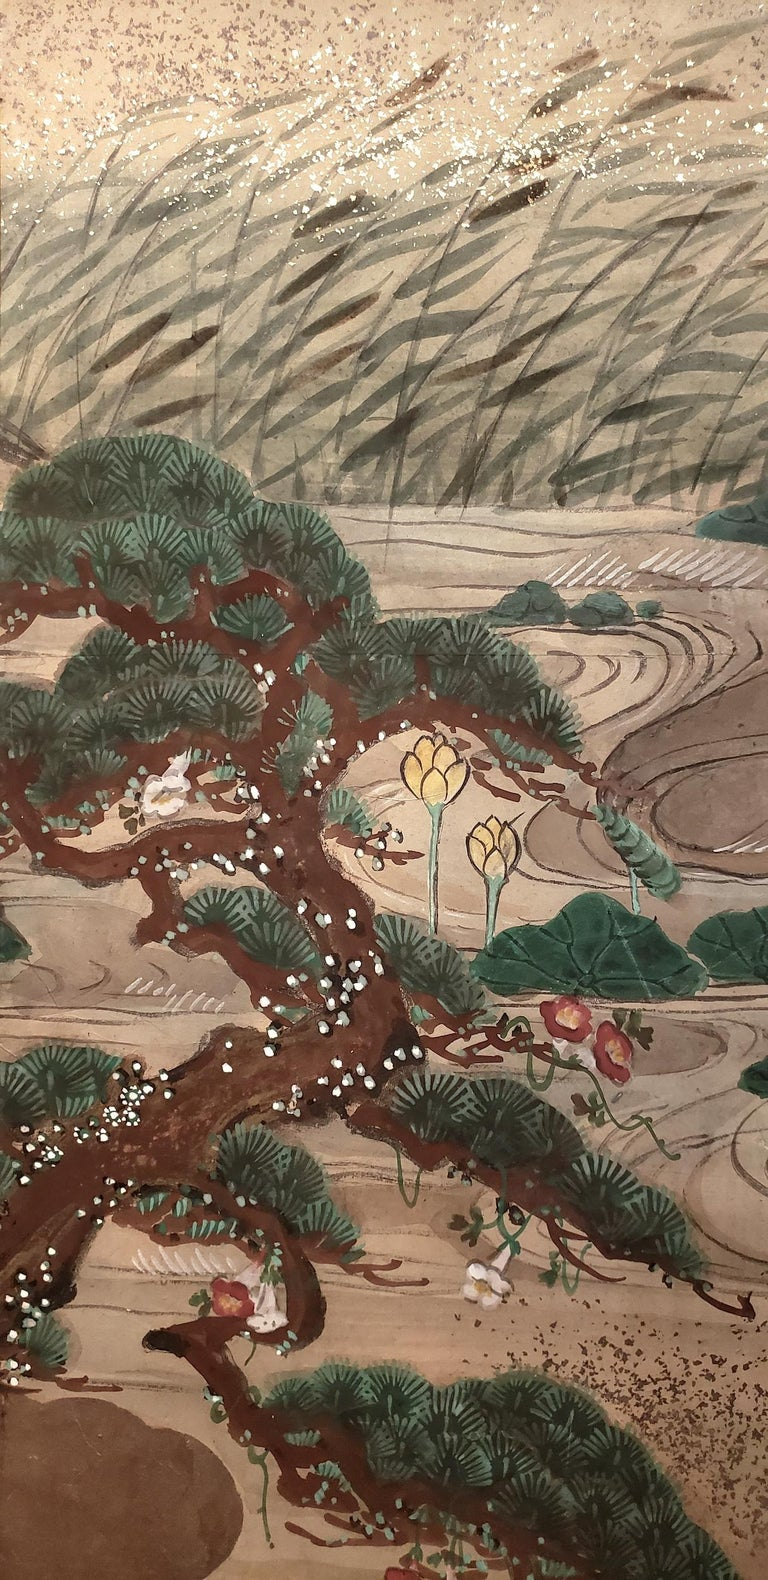 Japanese four-panel screen: Water landscape, Meiji period (1868-1912) painting of a waterfall on the left, leading to a meandering stream amongst a hilly landscape. Lotus flowers and leaves rise above the surface, water grasses bend in the breeze,